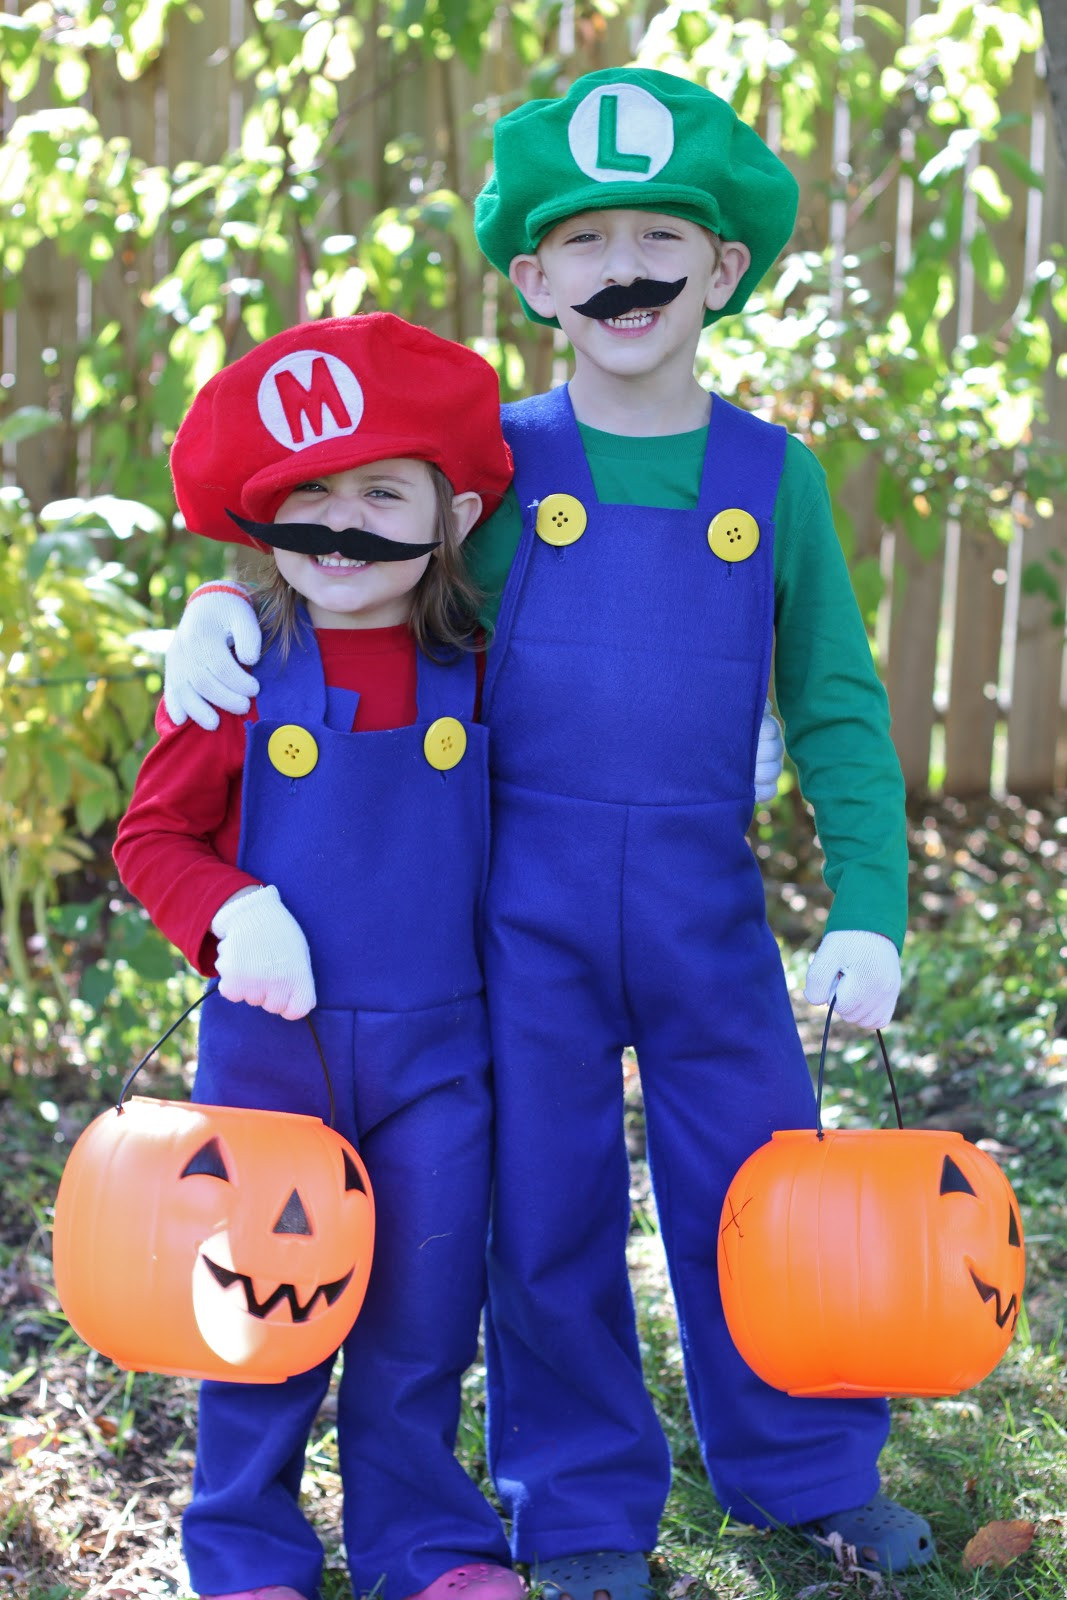 Super Mario Costume DIY  How to Make Mario and Luigi Costumes Tutorial Smashed